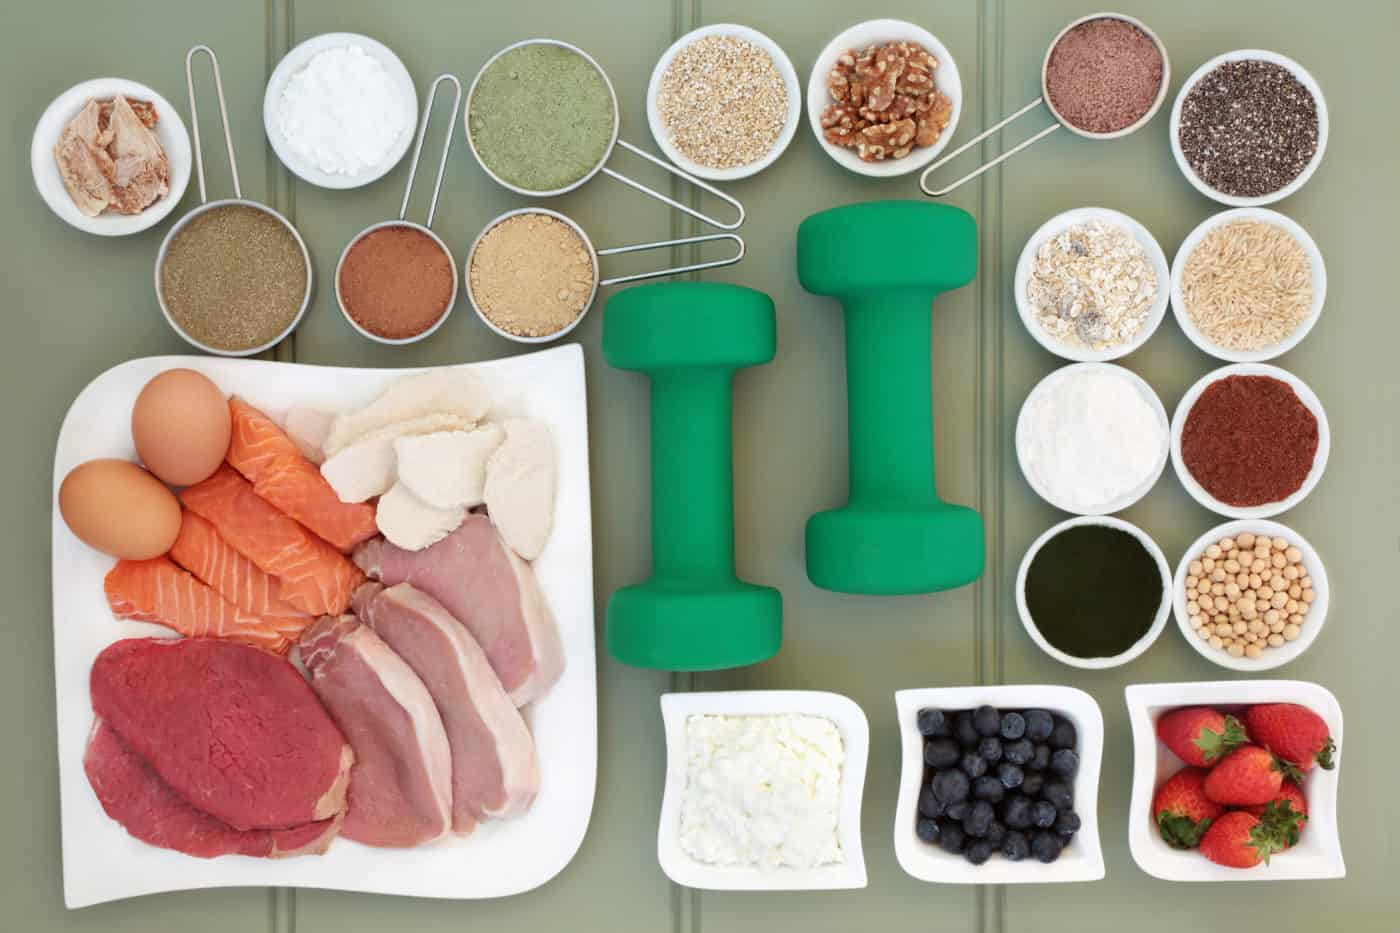 Bodybuilding with Whole Food Nutrition - Selene River Press